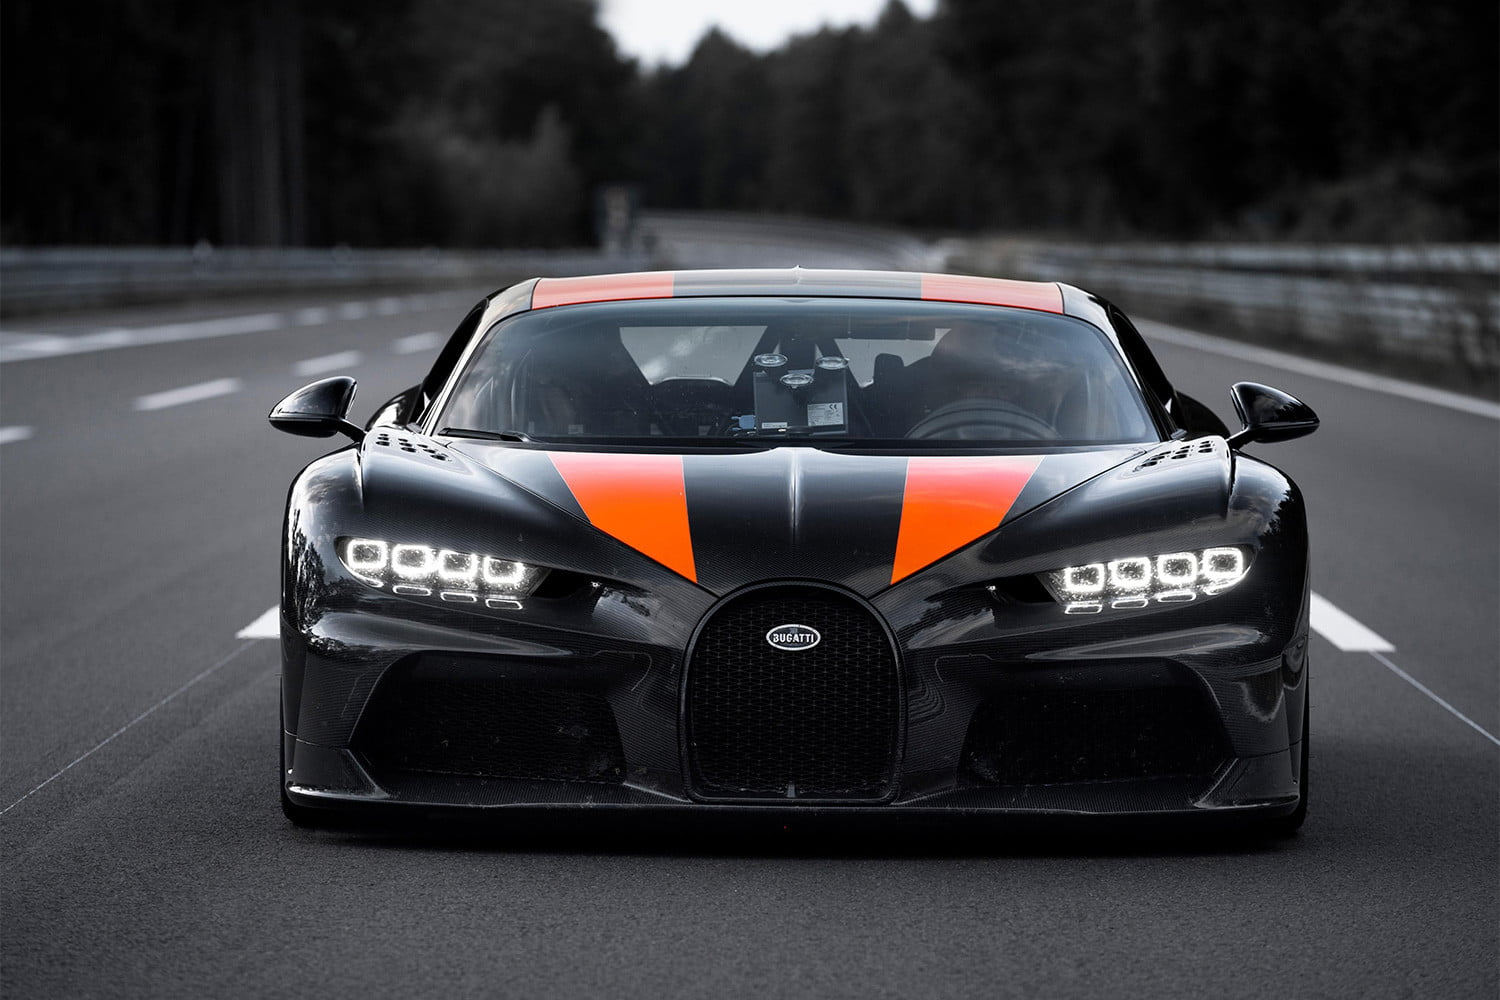 How do you get a Bugatti to 304 mph? Grit, really good tires, and a lot of tech